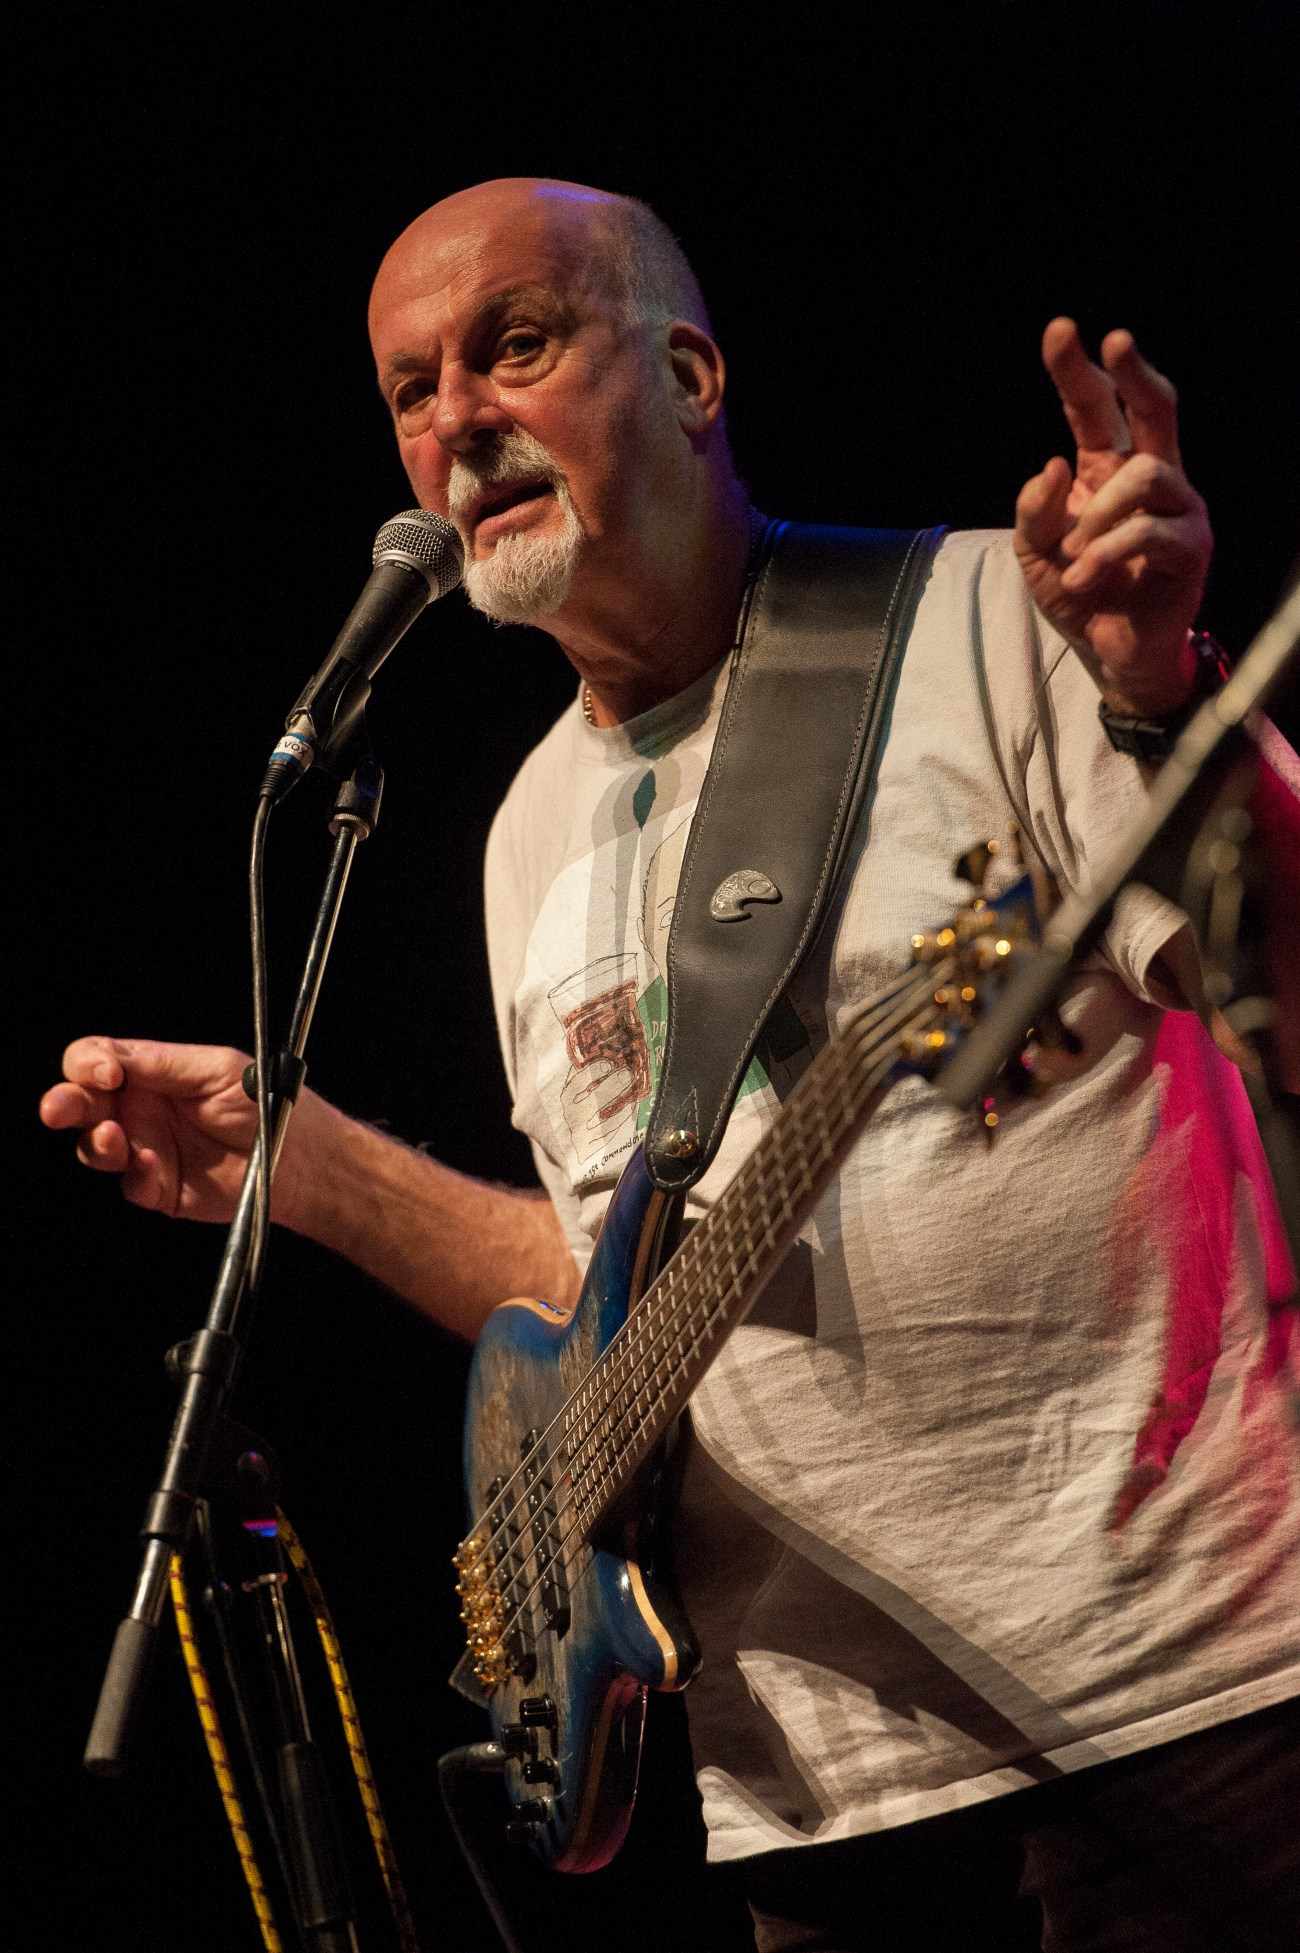 fairport convention RNCM 9.2.20 by mike ainscoe 9